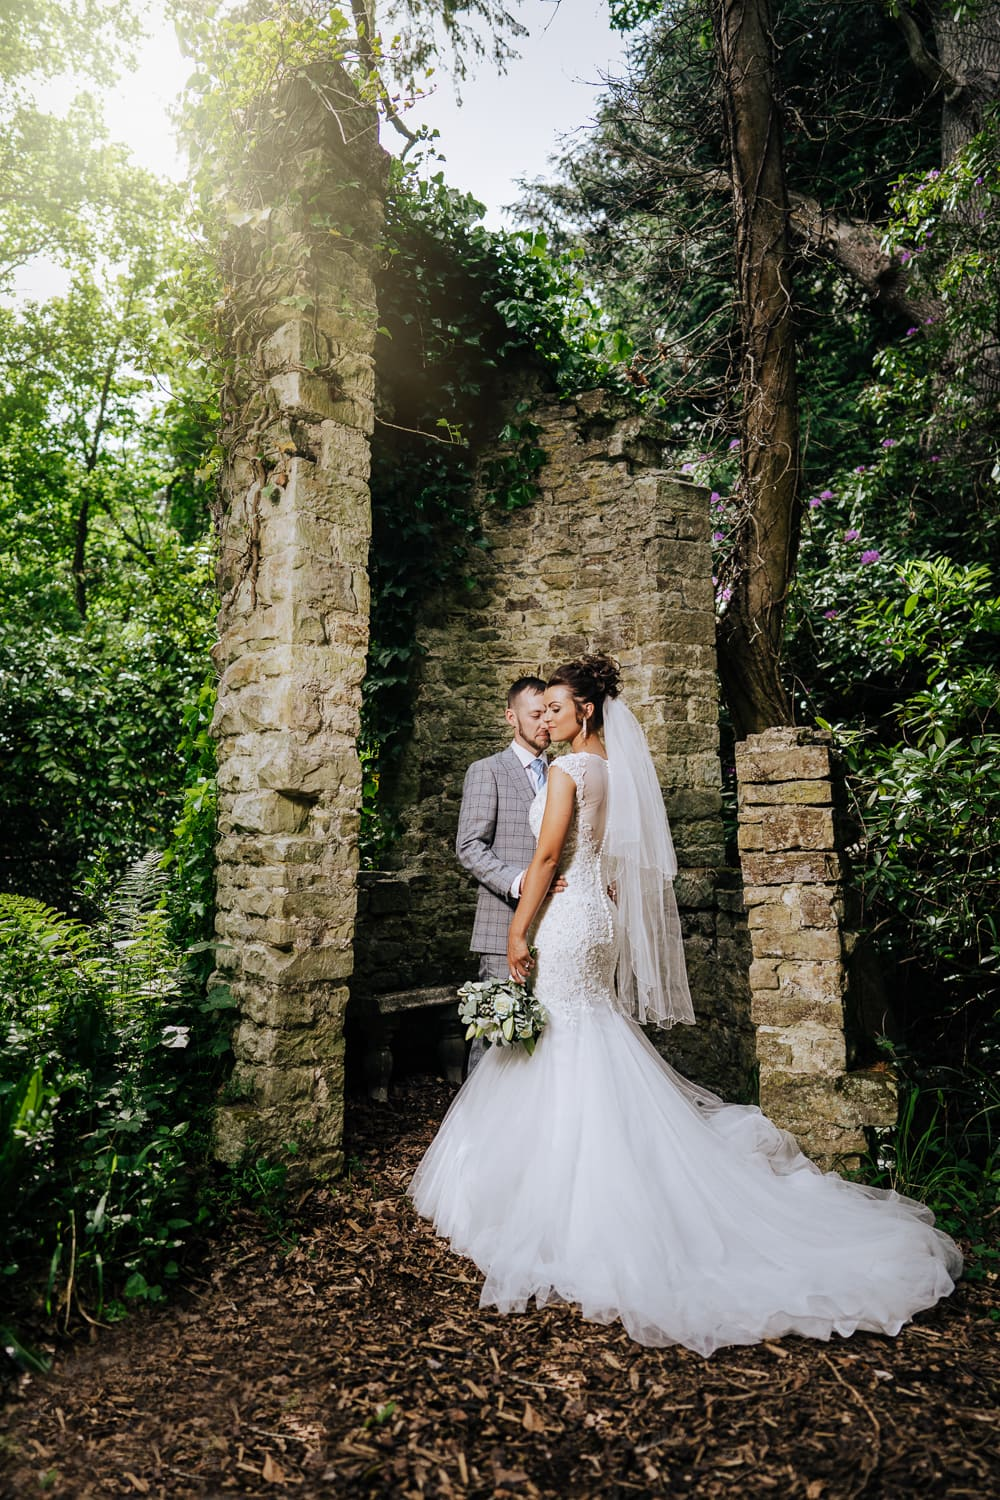 Stunning portrait of Bride and Groom in beautiful surroundings